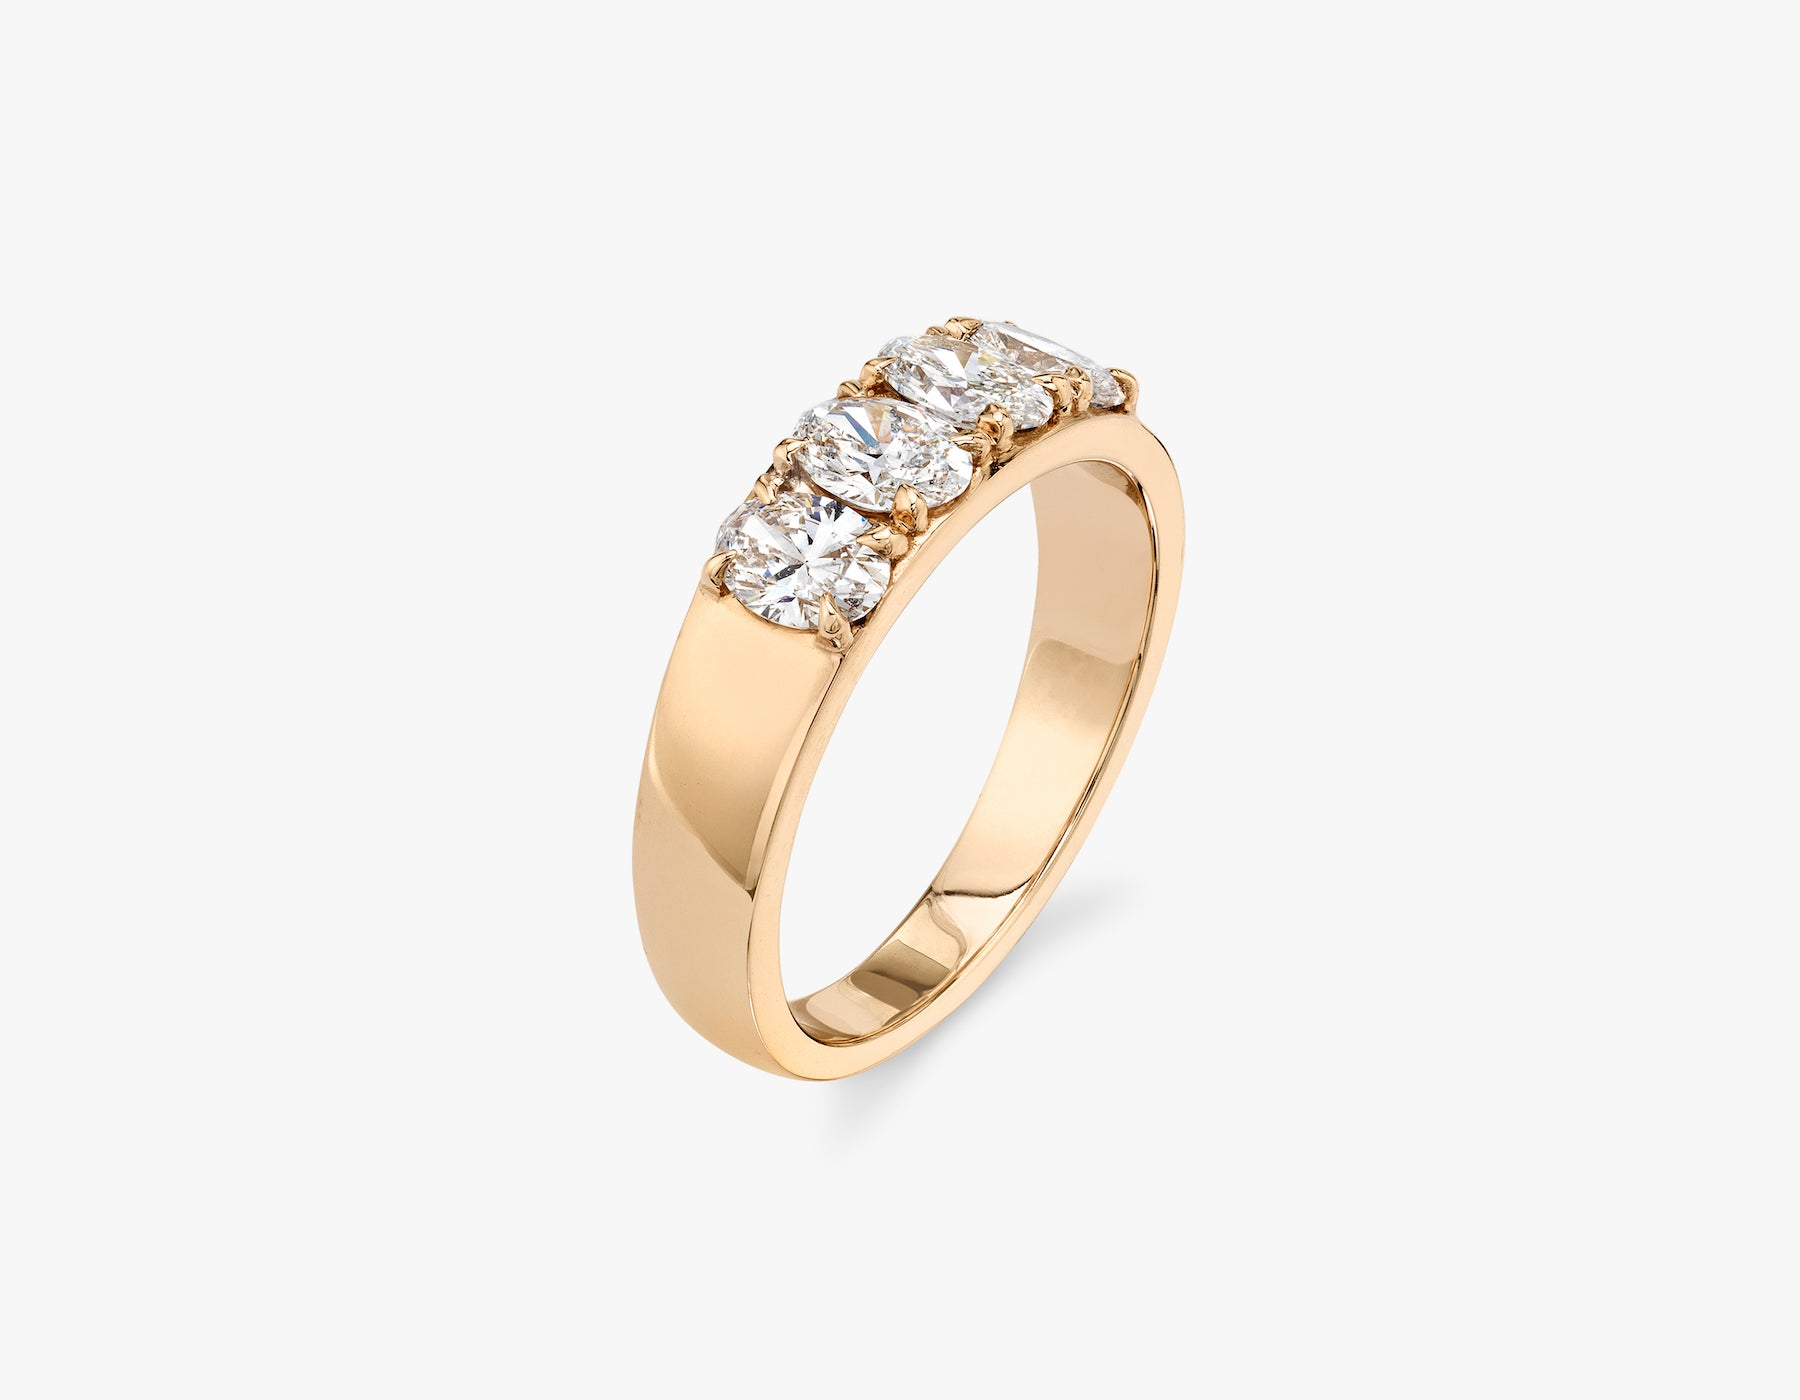 Vrai classic elegant Oval Diamond Tetrad Band .25ct Oval Diamond Ring, 14K Rose Gold